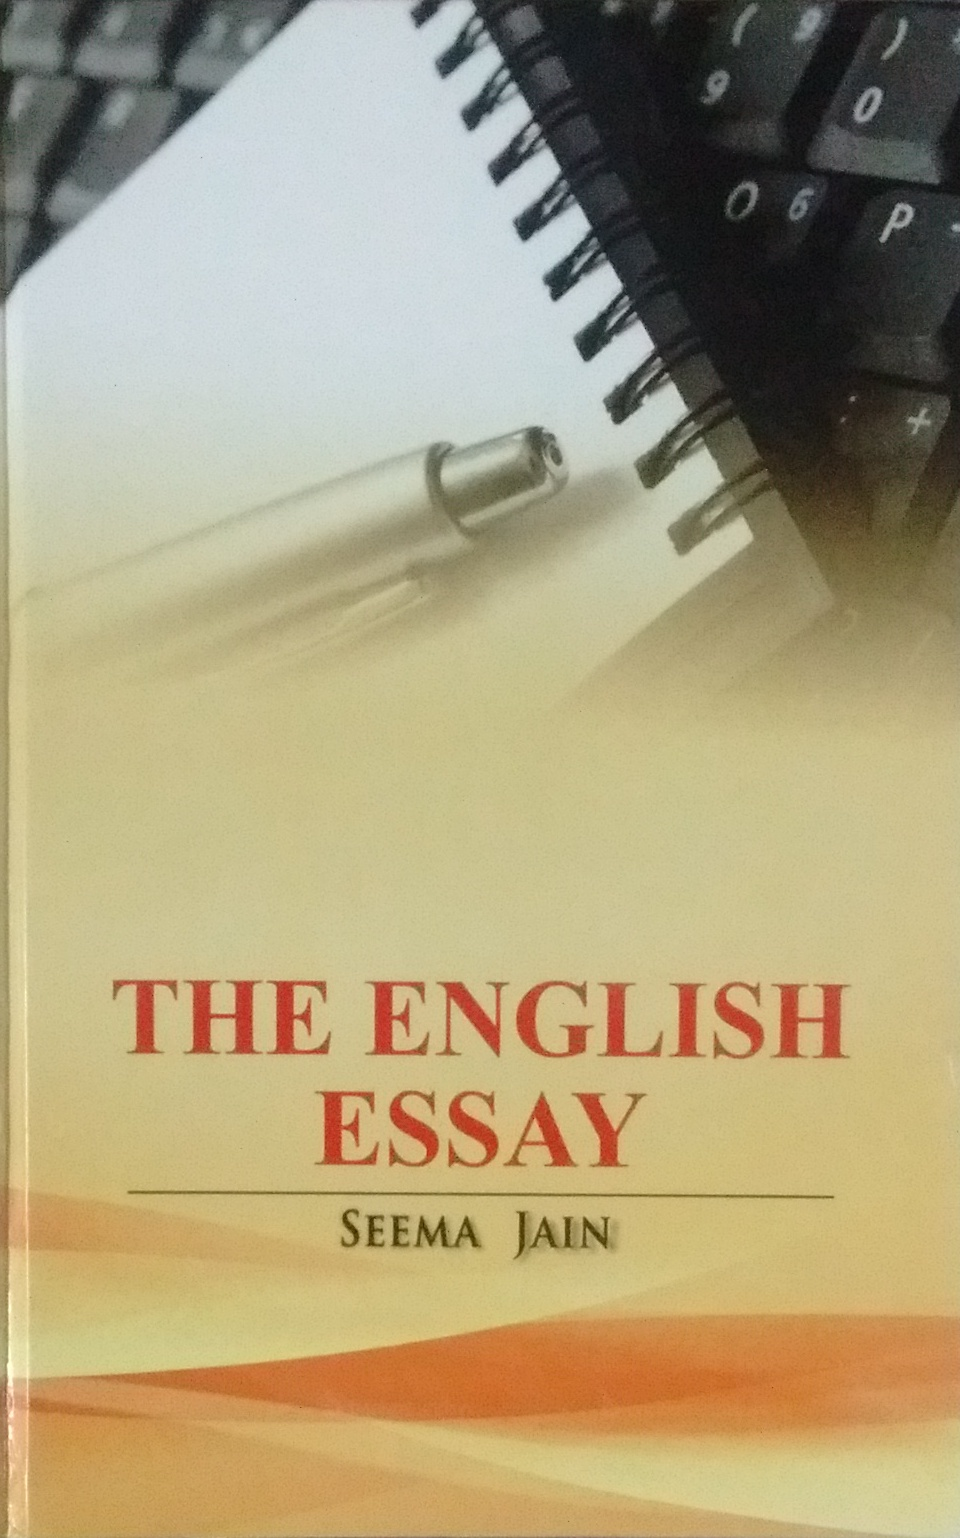 English As A Global Language Essay  Examples Of A Proposal Essay also How To Write A Good Thesis Statement For An Essay The English Essay  Indian Books And Periodicals Essays In Science